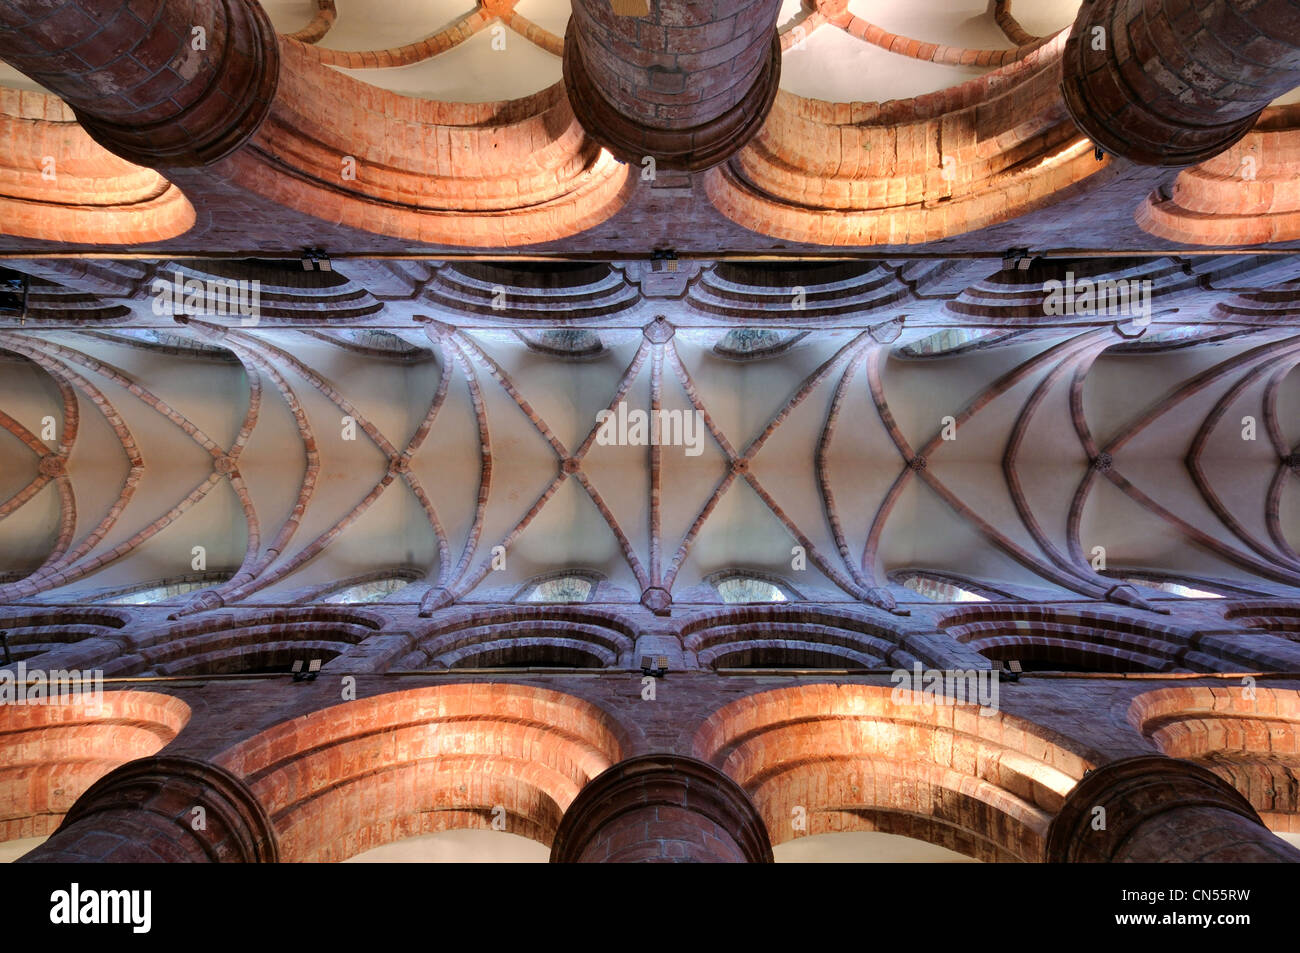 The ceiling of St Magnus Cathedral, Kirkwall, Orkney - Stock Image